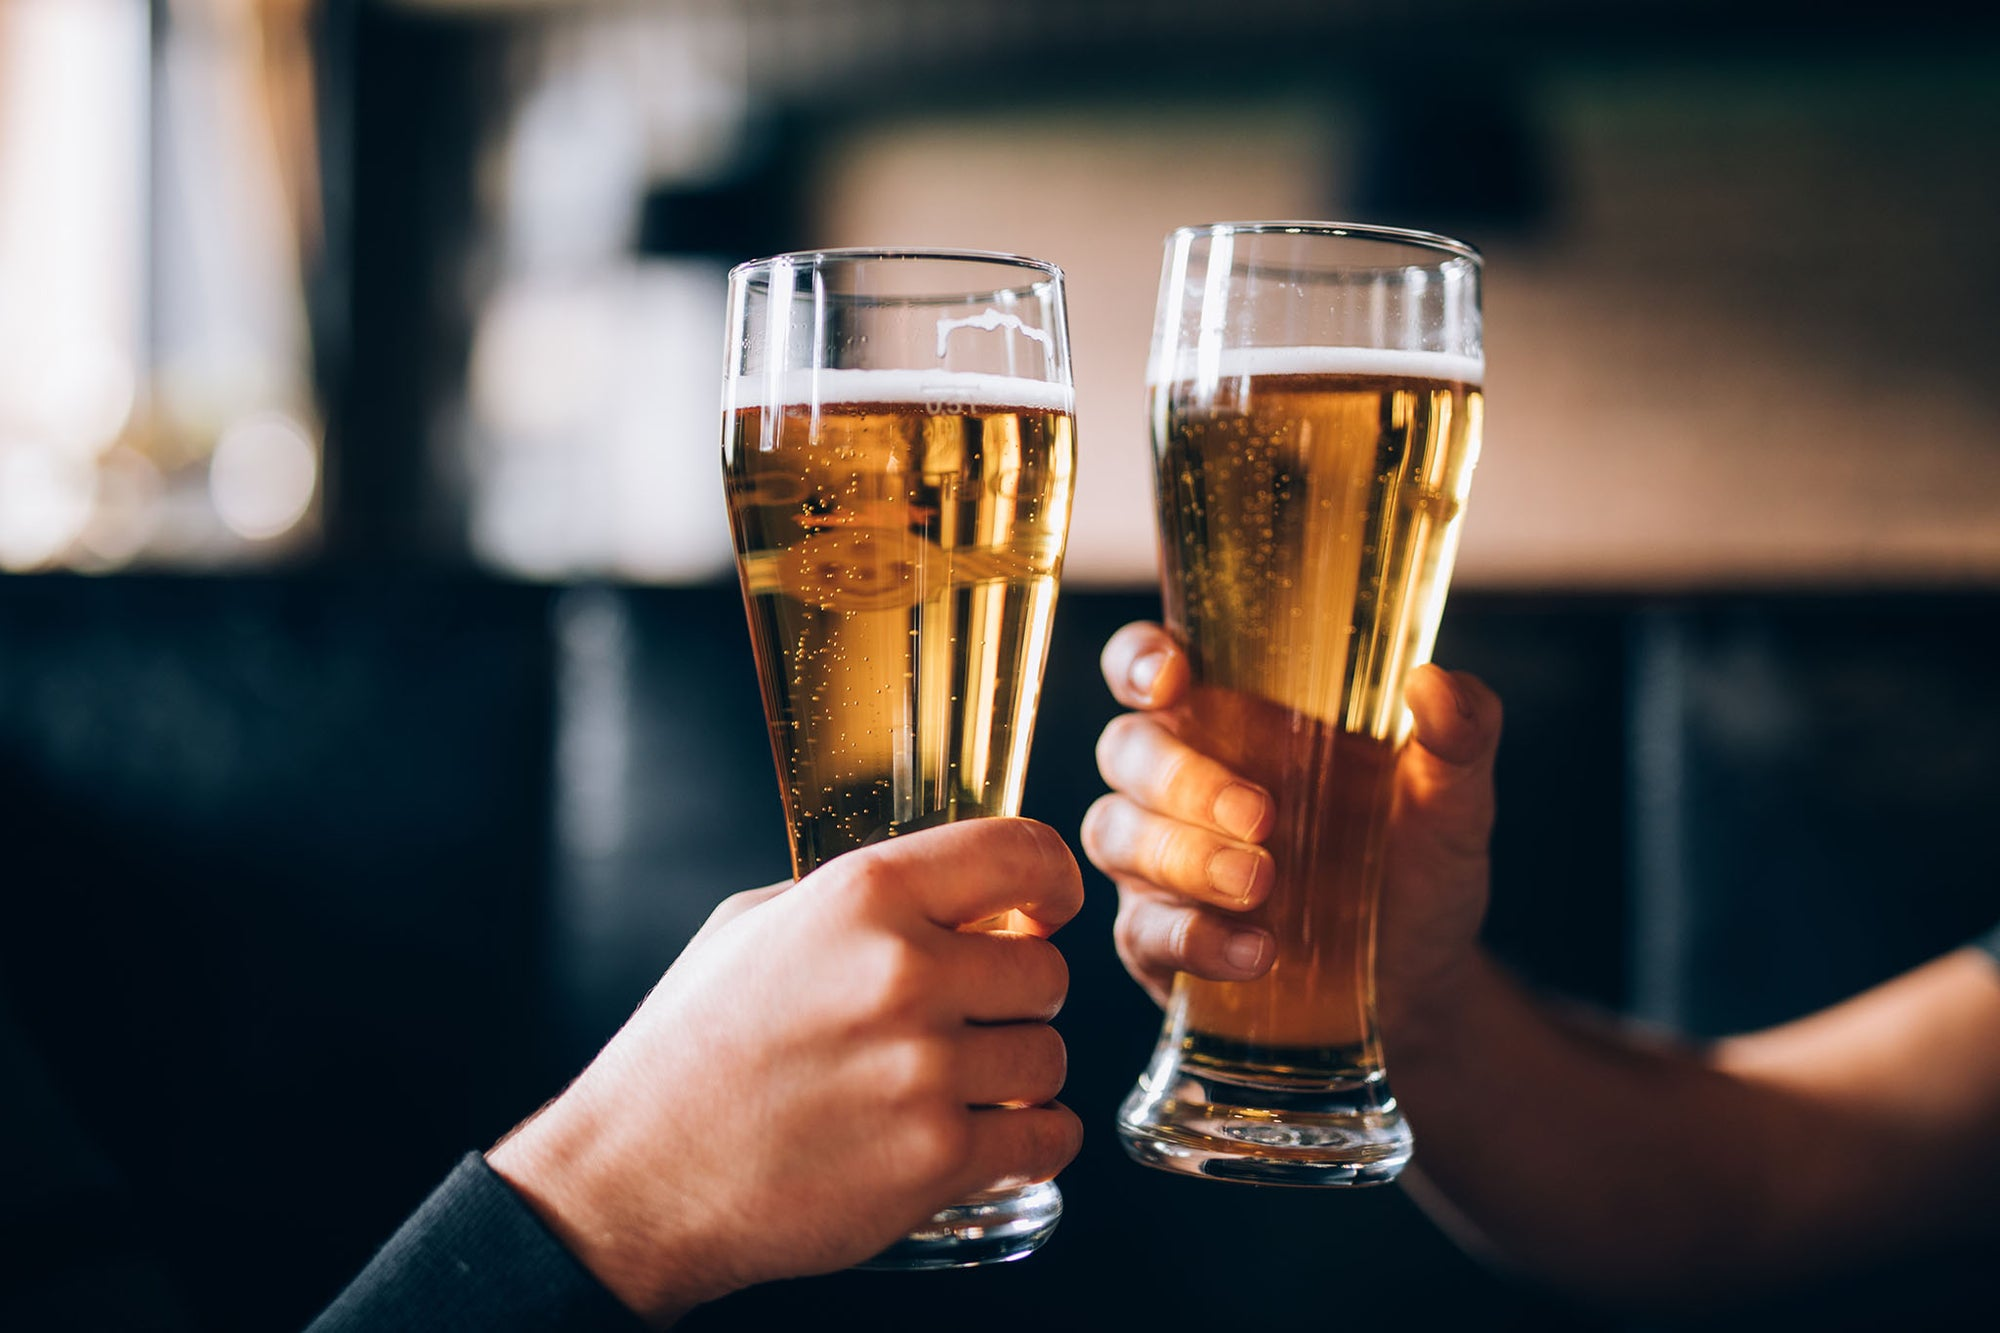 Two people holding up full beer glasses